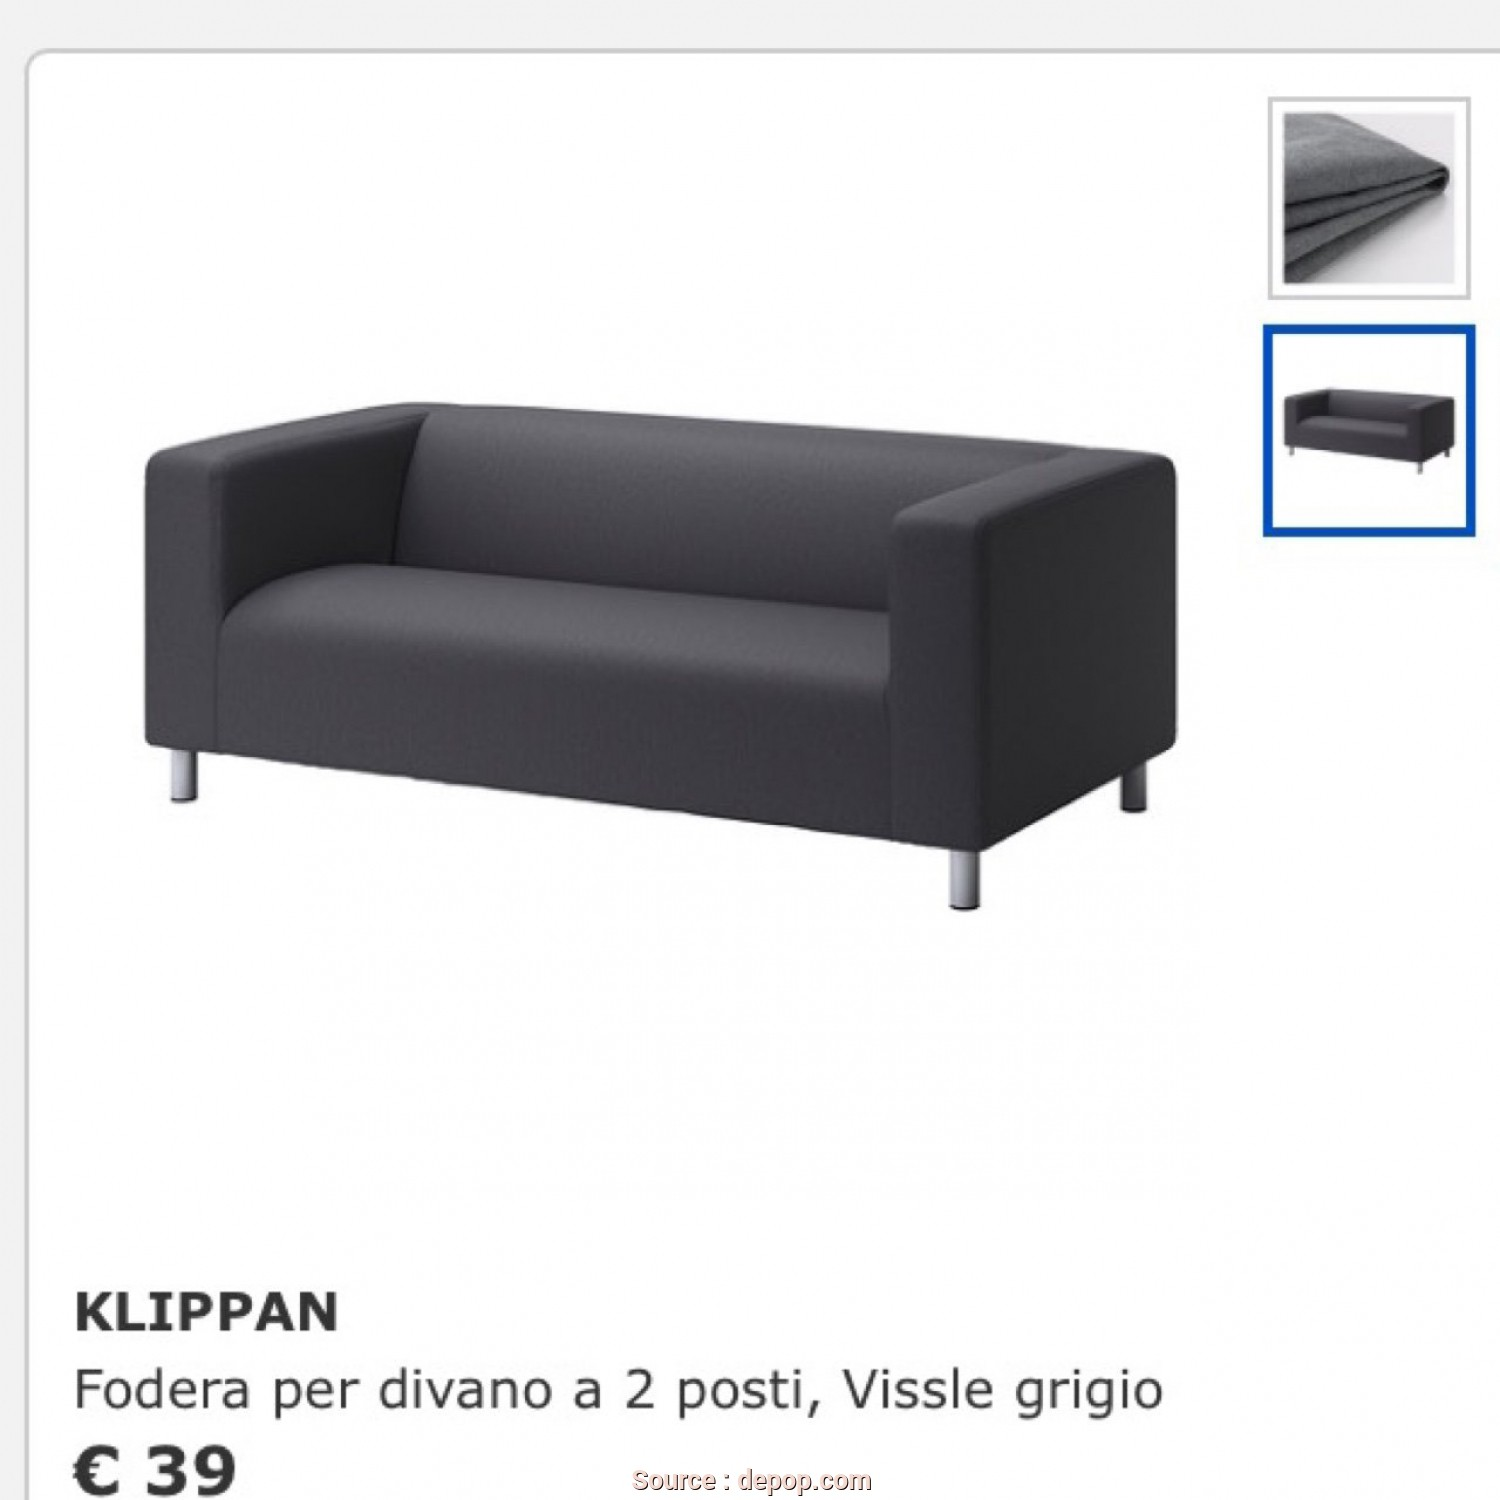 Lavare Fodera Divano Ikea, Bellissima Listed On Depop By Isabella09